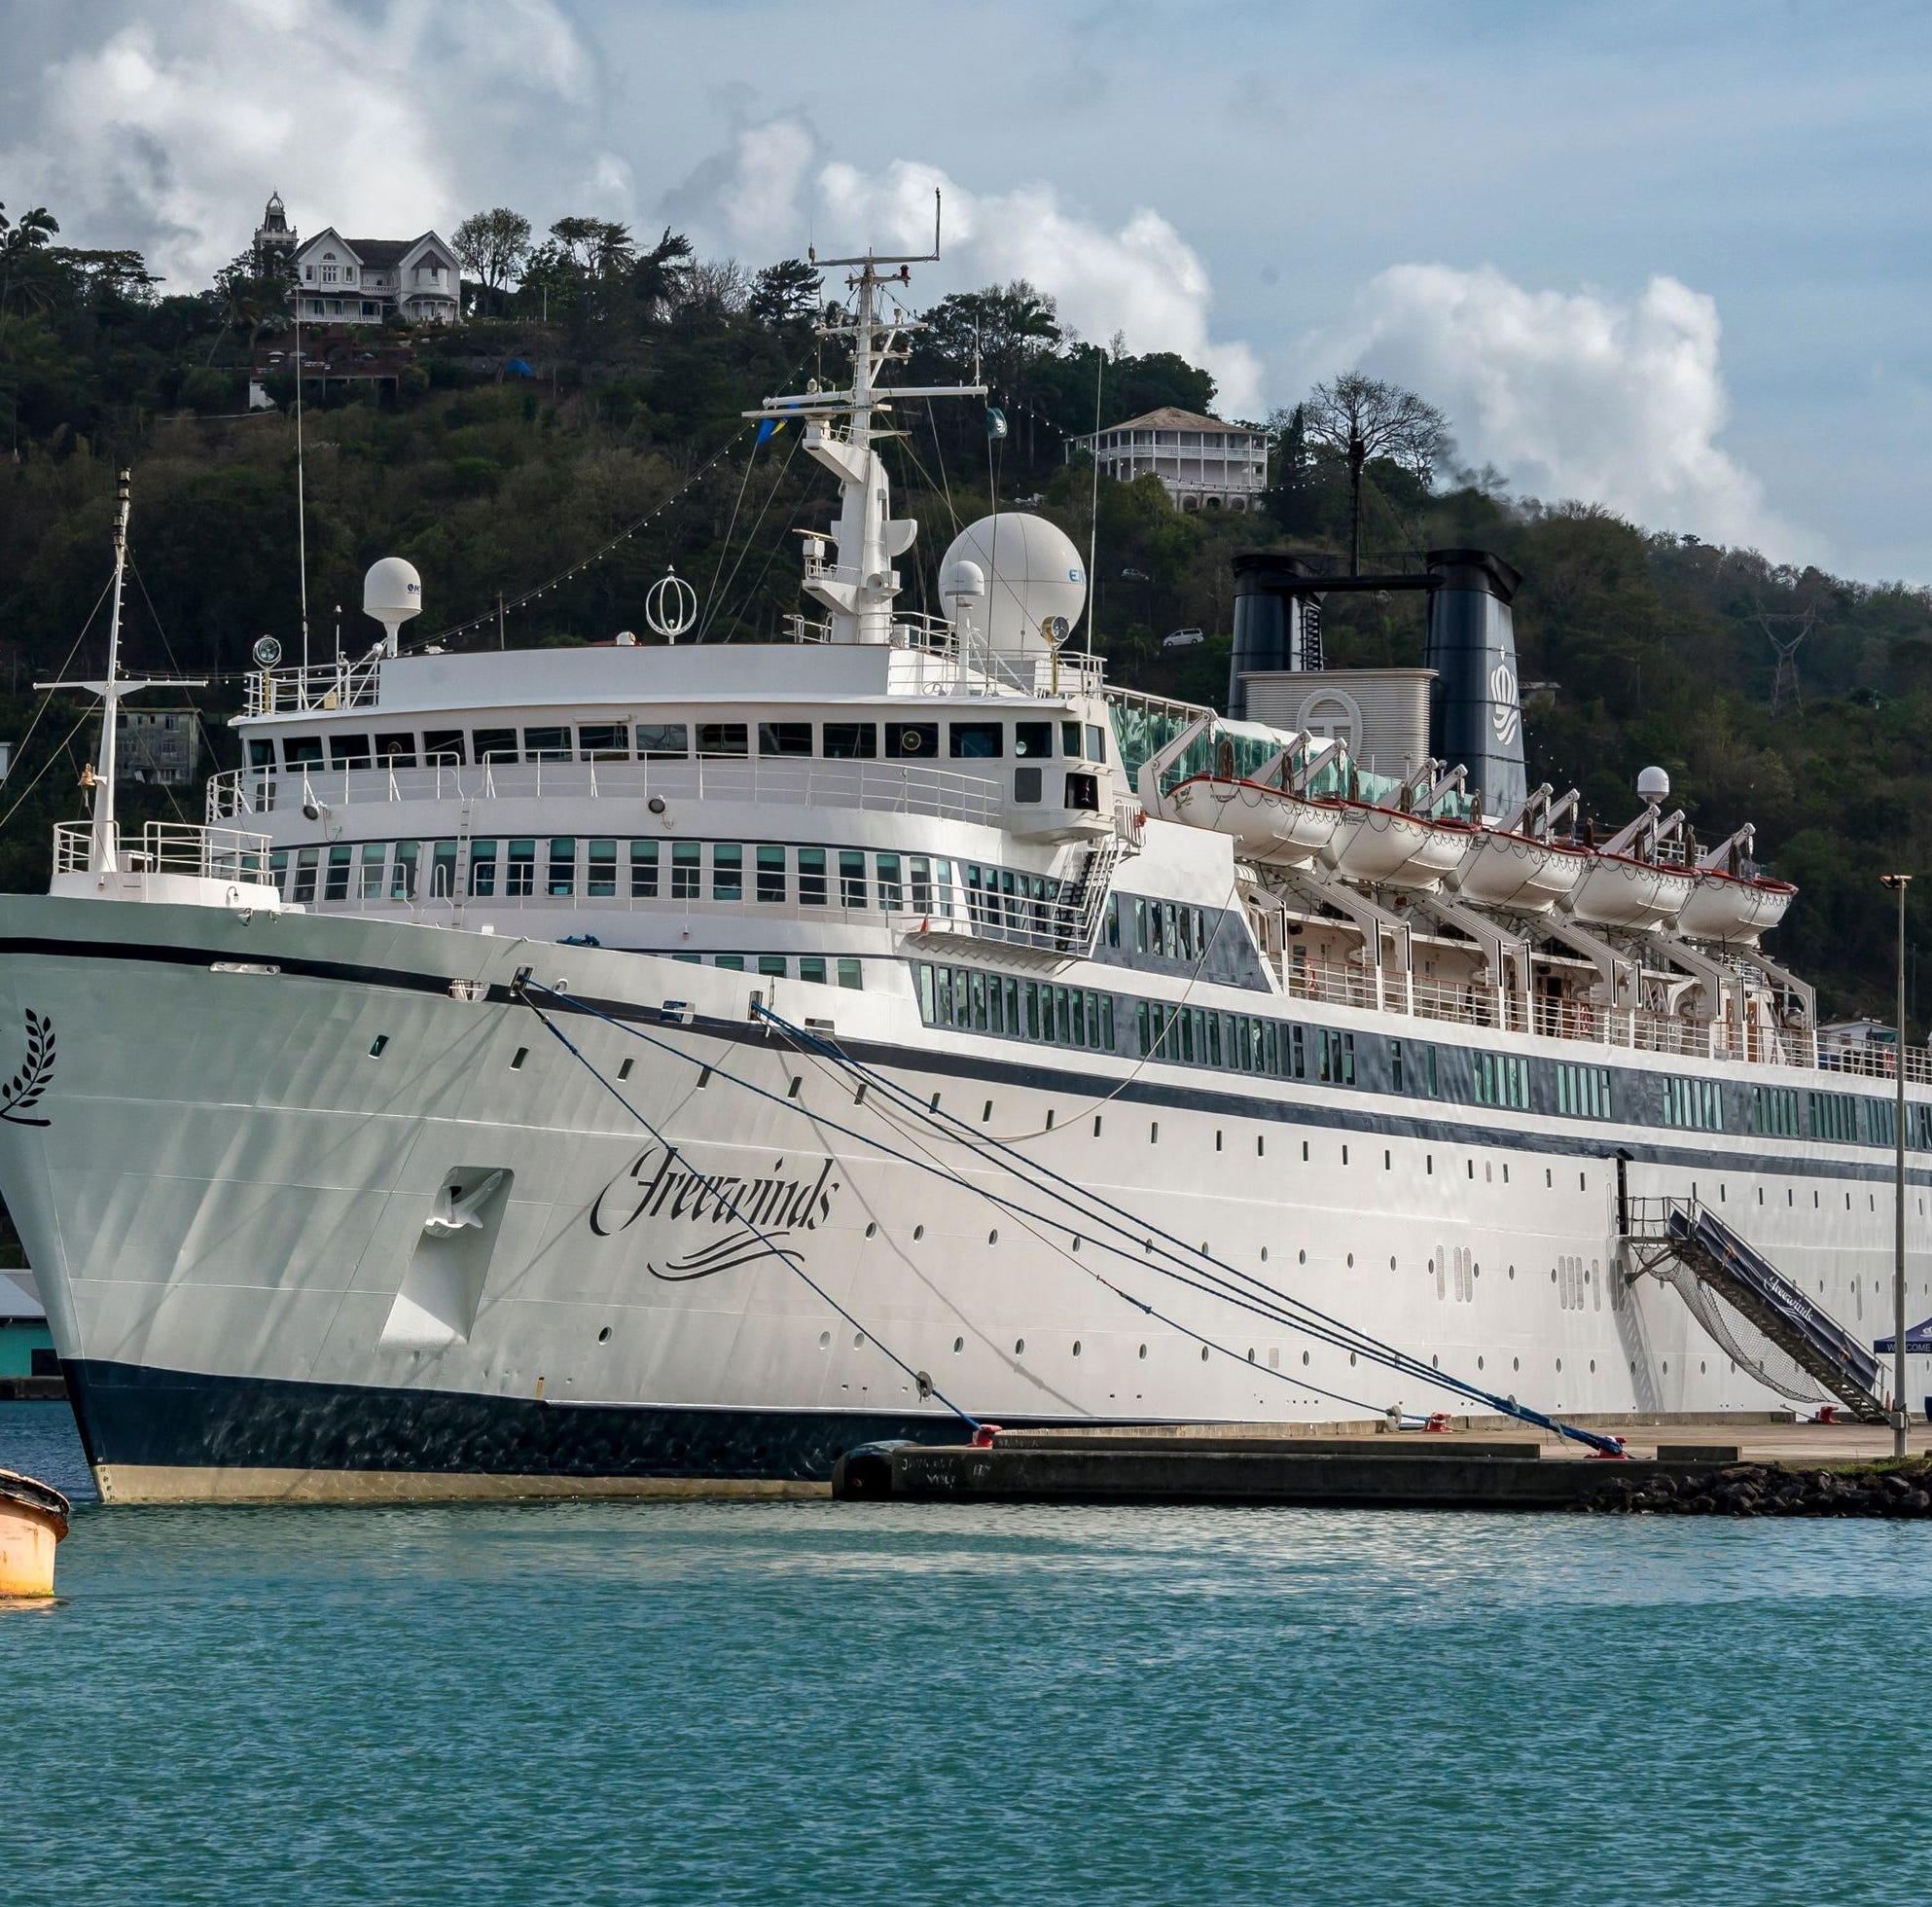 The Freewinds cruise ship owned by the Church of Scientology is seen docked in quarantine at the Point Seraphine terminal in Castries, Saint Lucia, on May 2, 2019, after a measles case was detected onboard.